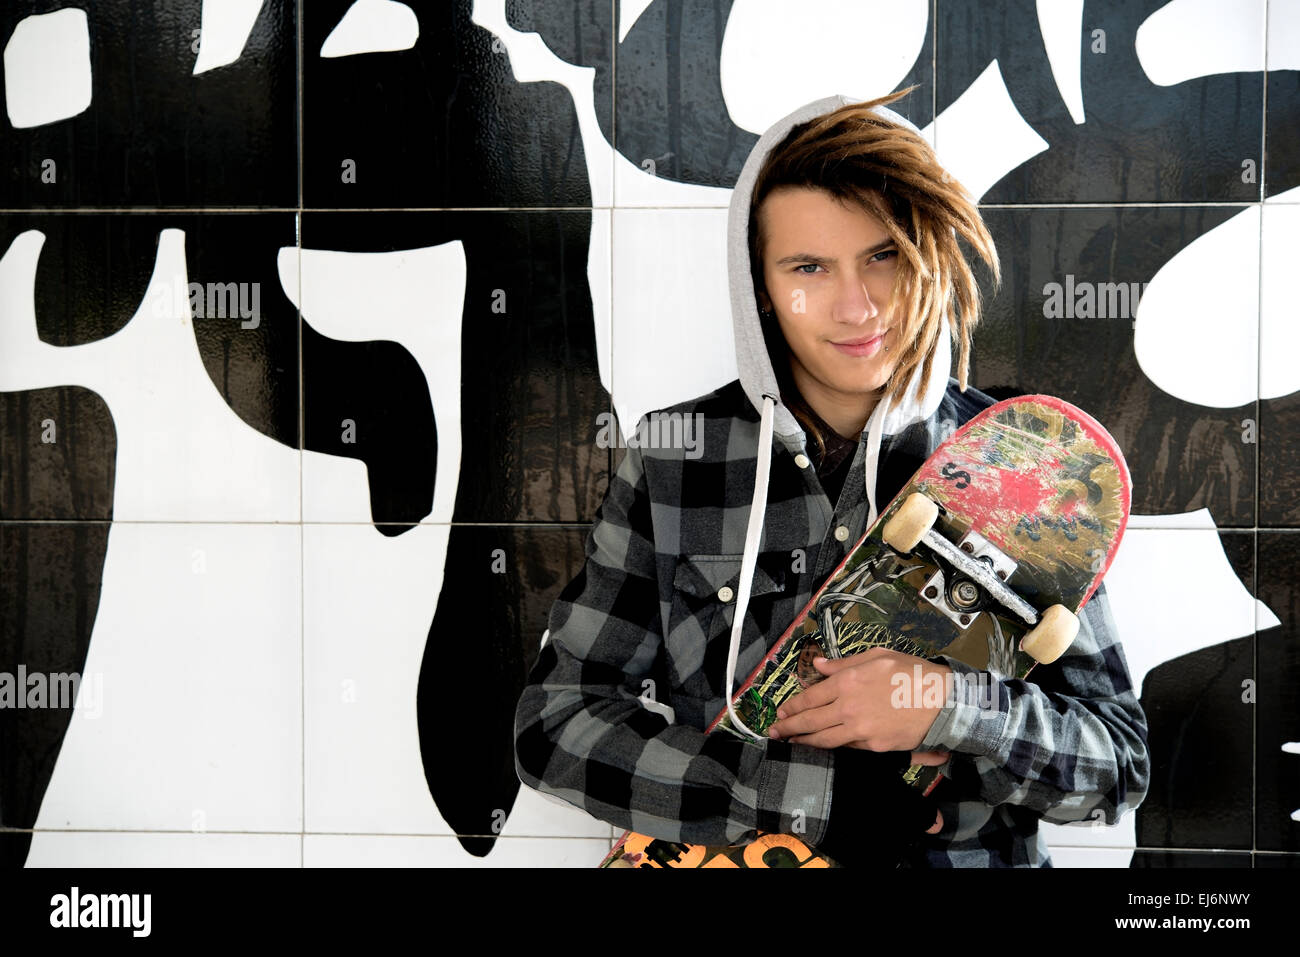 portrait of young guy  with skate and rasta hair in a lifestyle concept - Stock Image